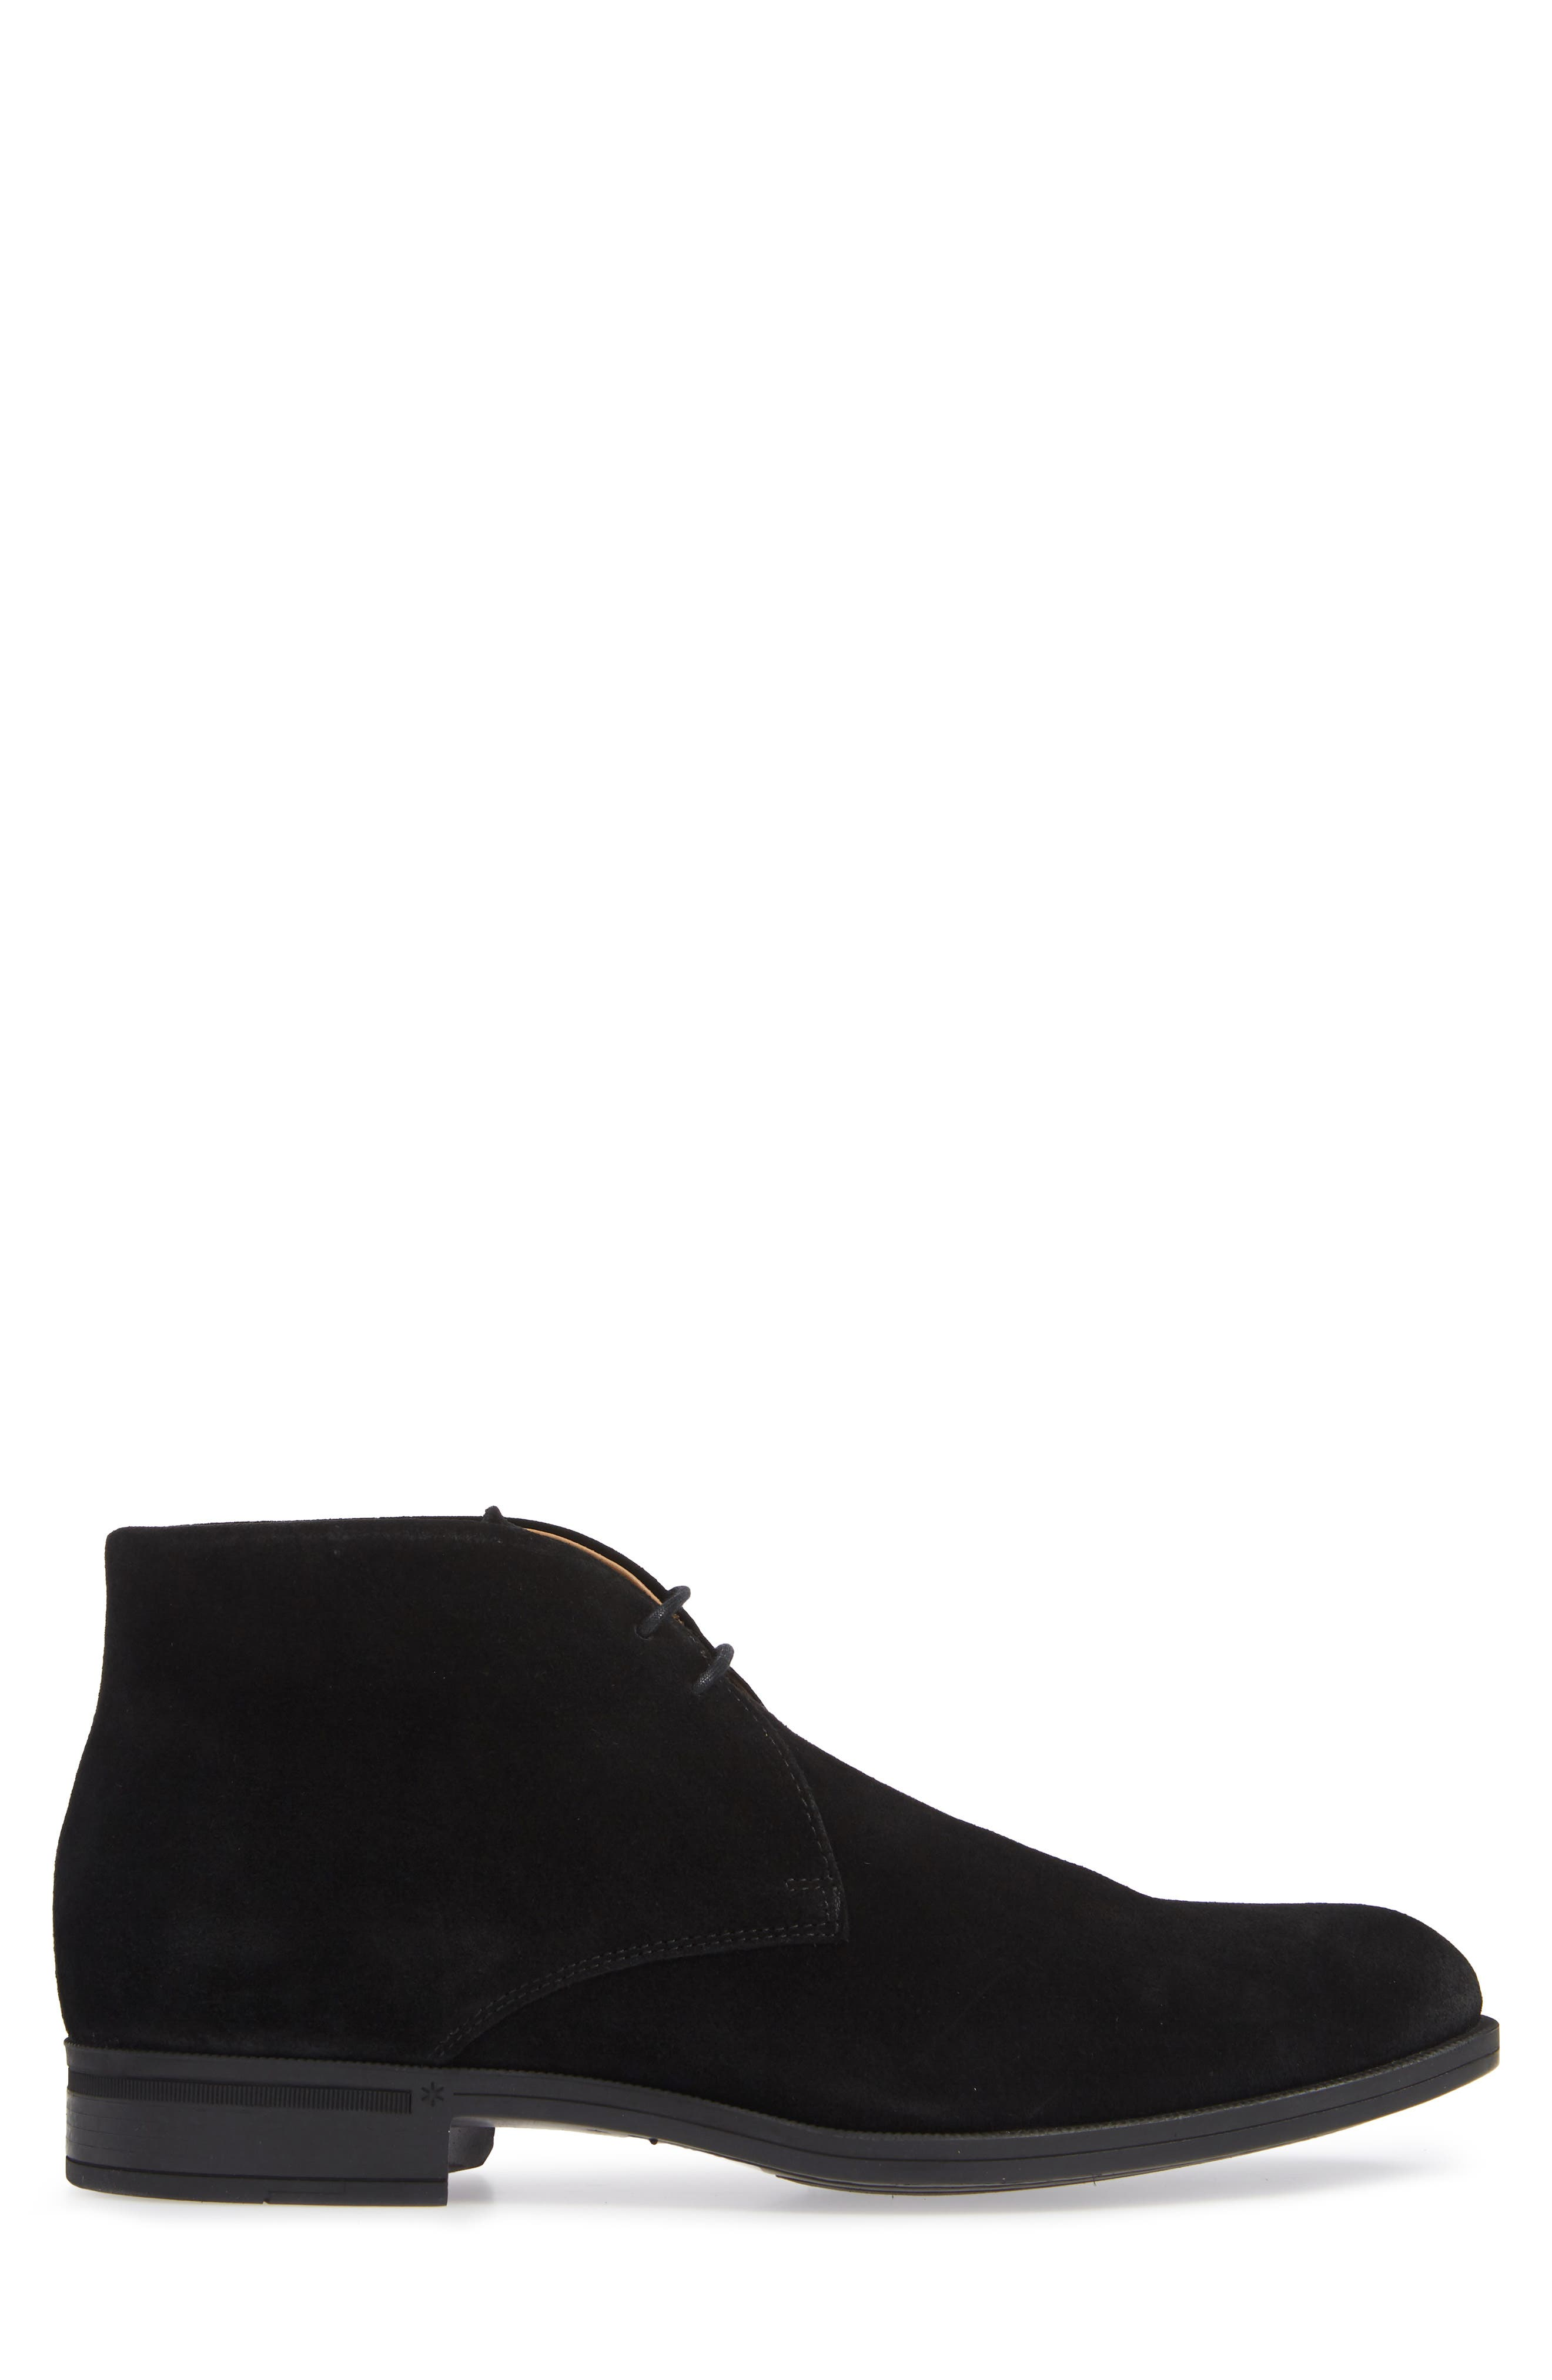 VINCE CAMUTO, Iden Chukka Boot, Alternate thumbnail 3, color, BLACK SUEDE